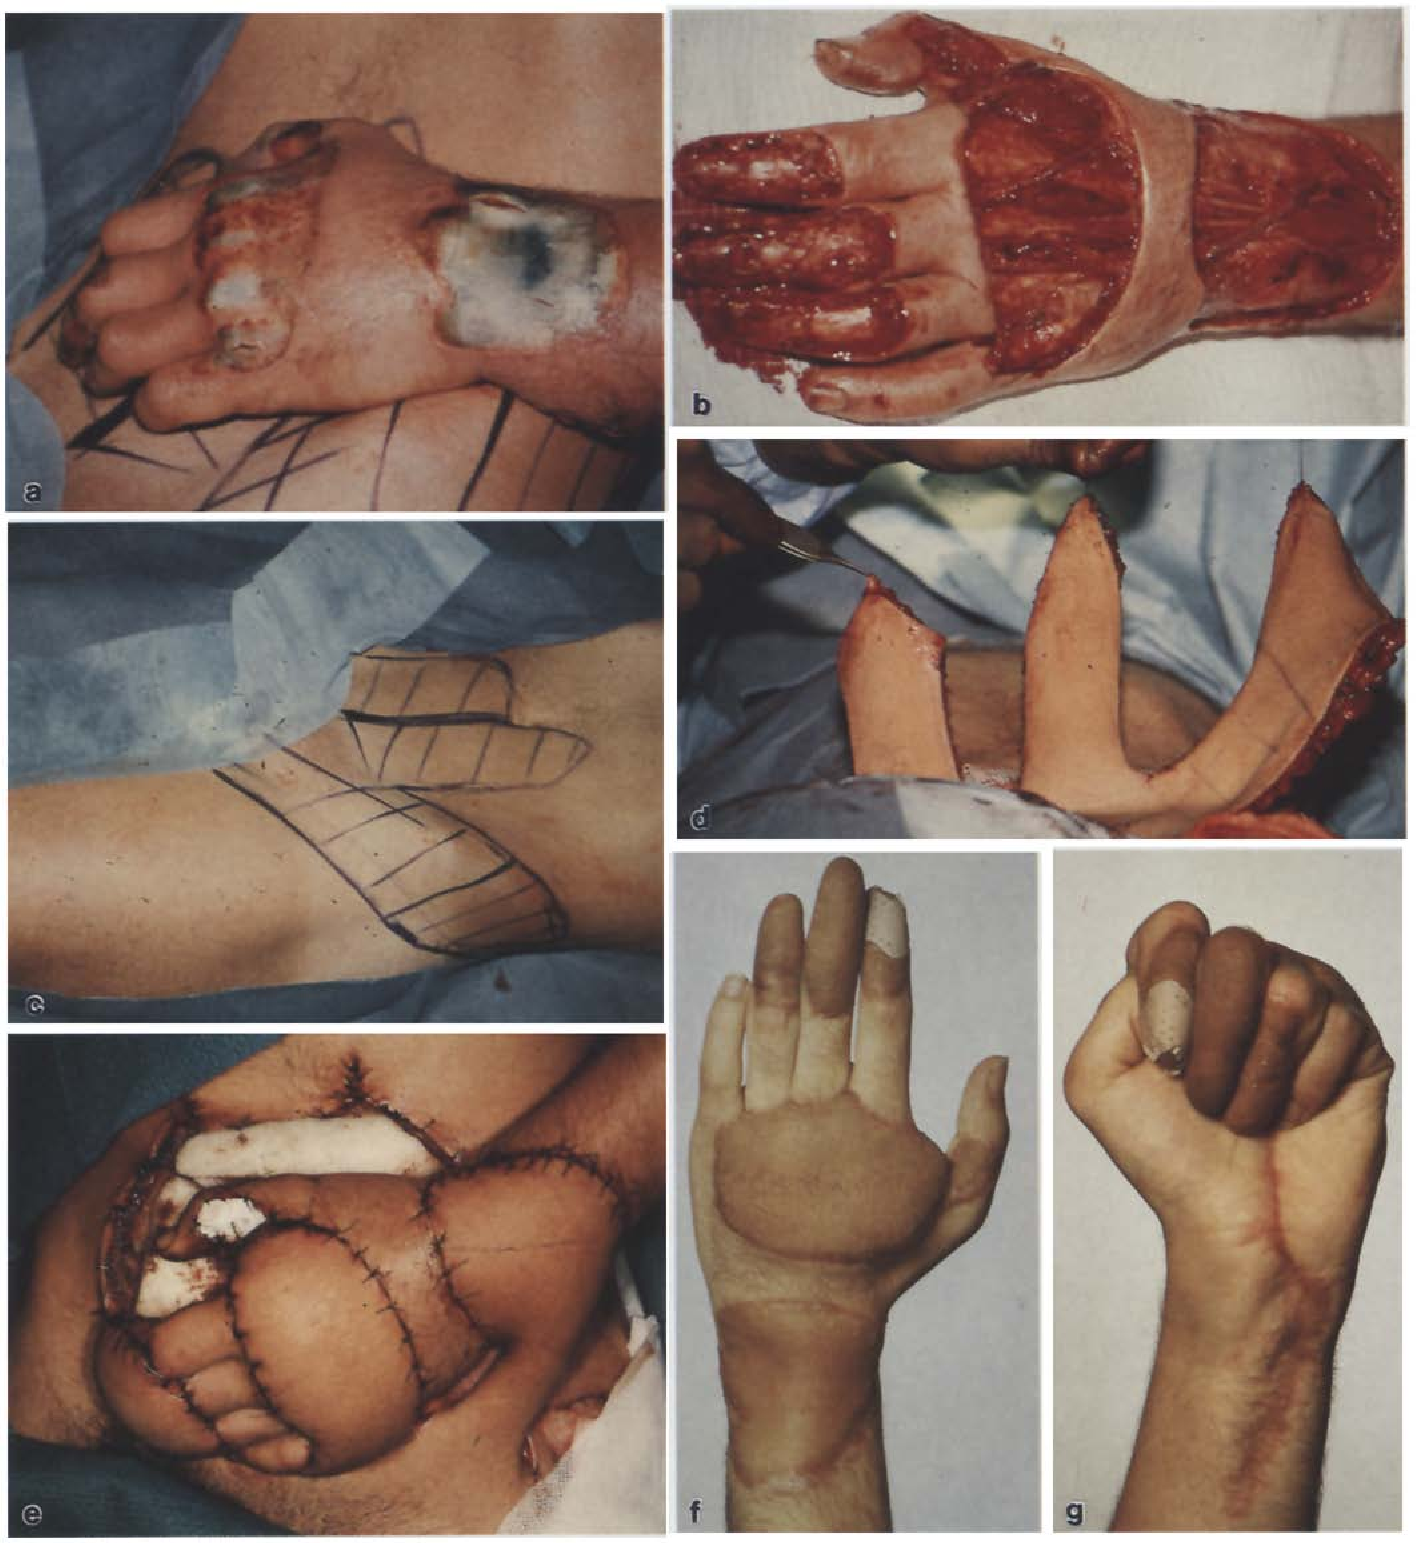 Fig. 1. a 21-year-old printer who sustained a crush injury on the dorsum of his left wrist, mid-hand and long fingers, b After debridement, bone and extensor tendon apparatus were exposed, c, d An ipsilateral groin and two hypogastric flaps were planned for soft tissue reconstruction, e After insetting the flaps, the remaining abdominal skin defect was covered by a meshed skin graft, f, g Functional final result after separation of the syndactylies, trimming of the flap and scar revision